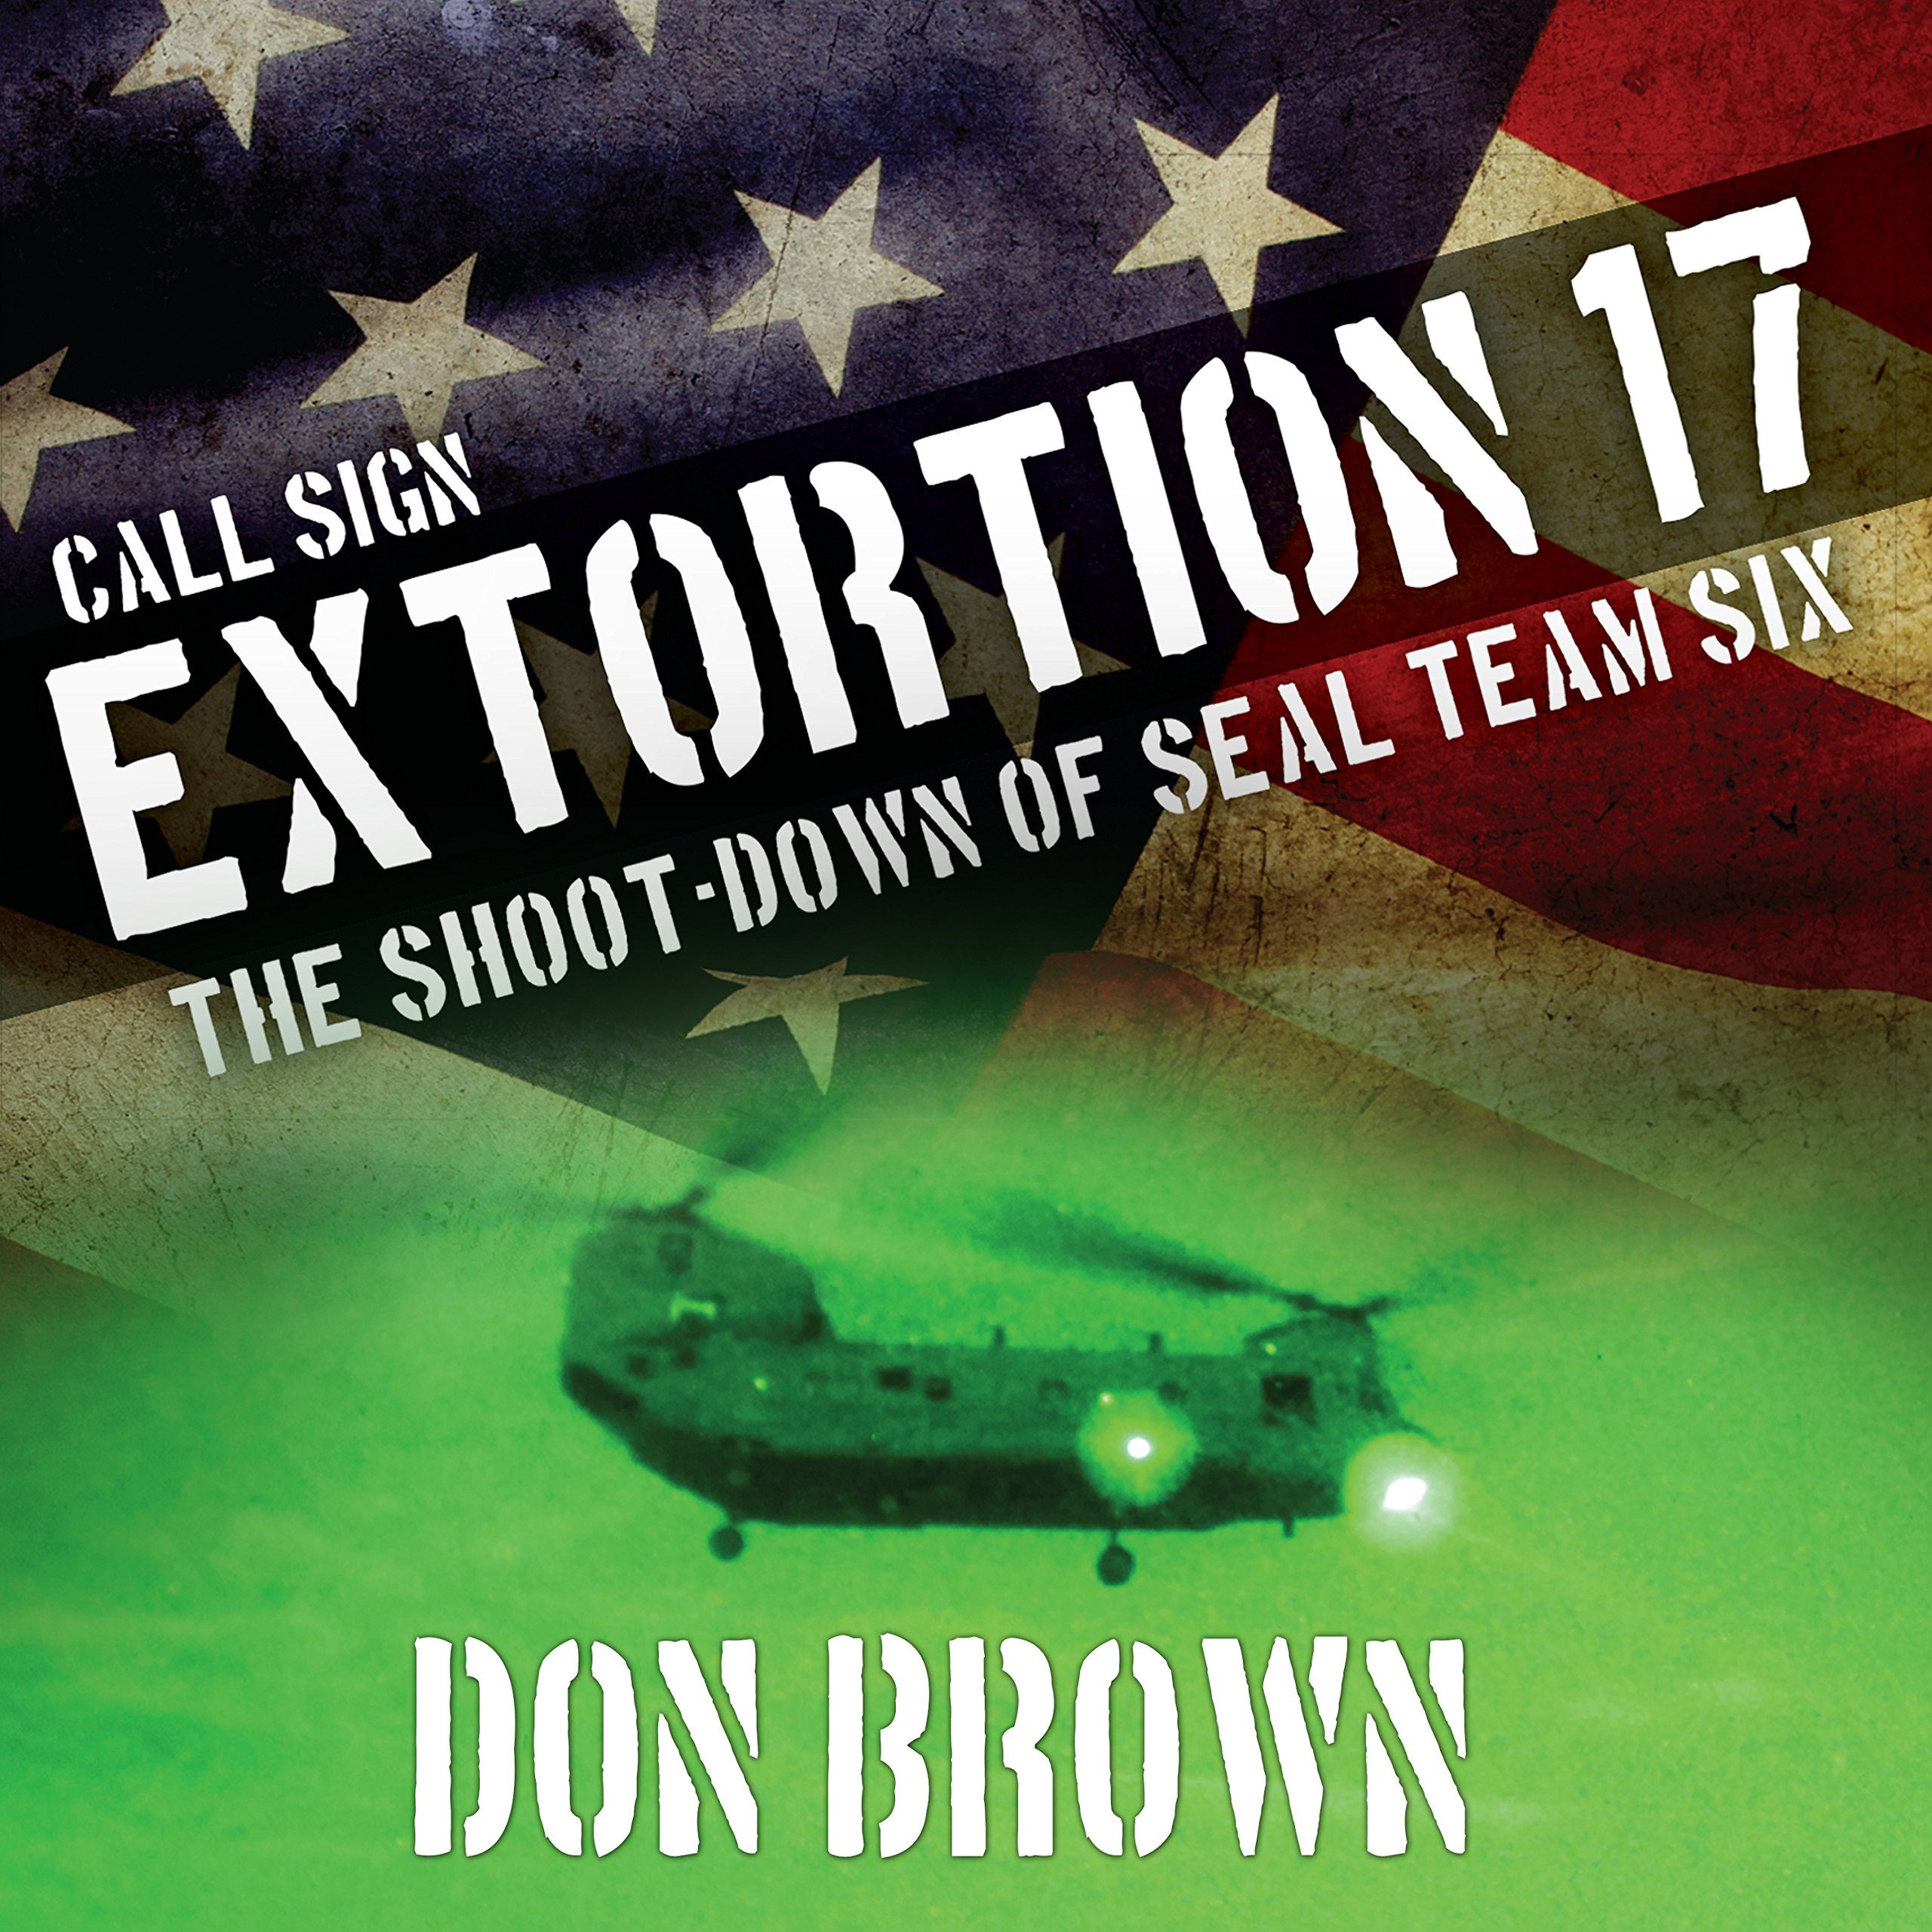 Printable Call Sign Extortion 17: The Shoot-down of Seal Team Six Audiobook Cover Art